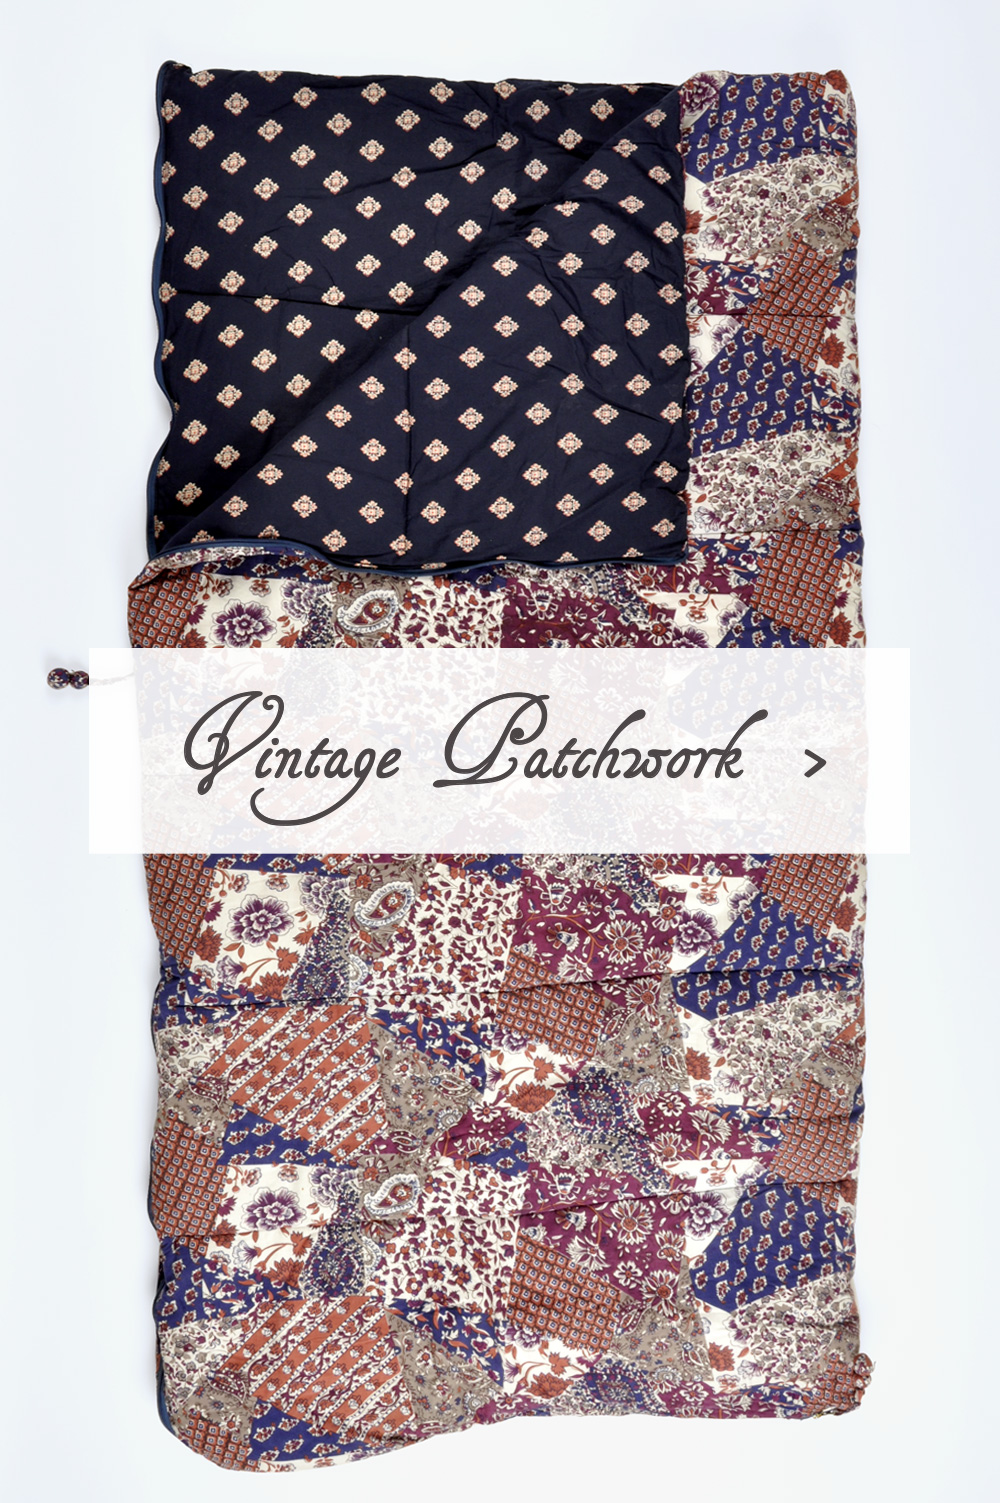 Vintage Patchwork Sleeping Beauties